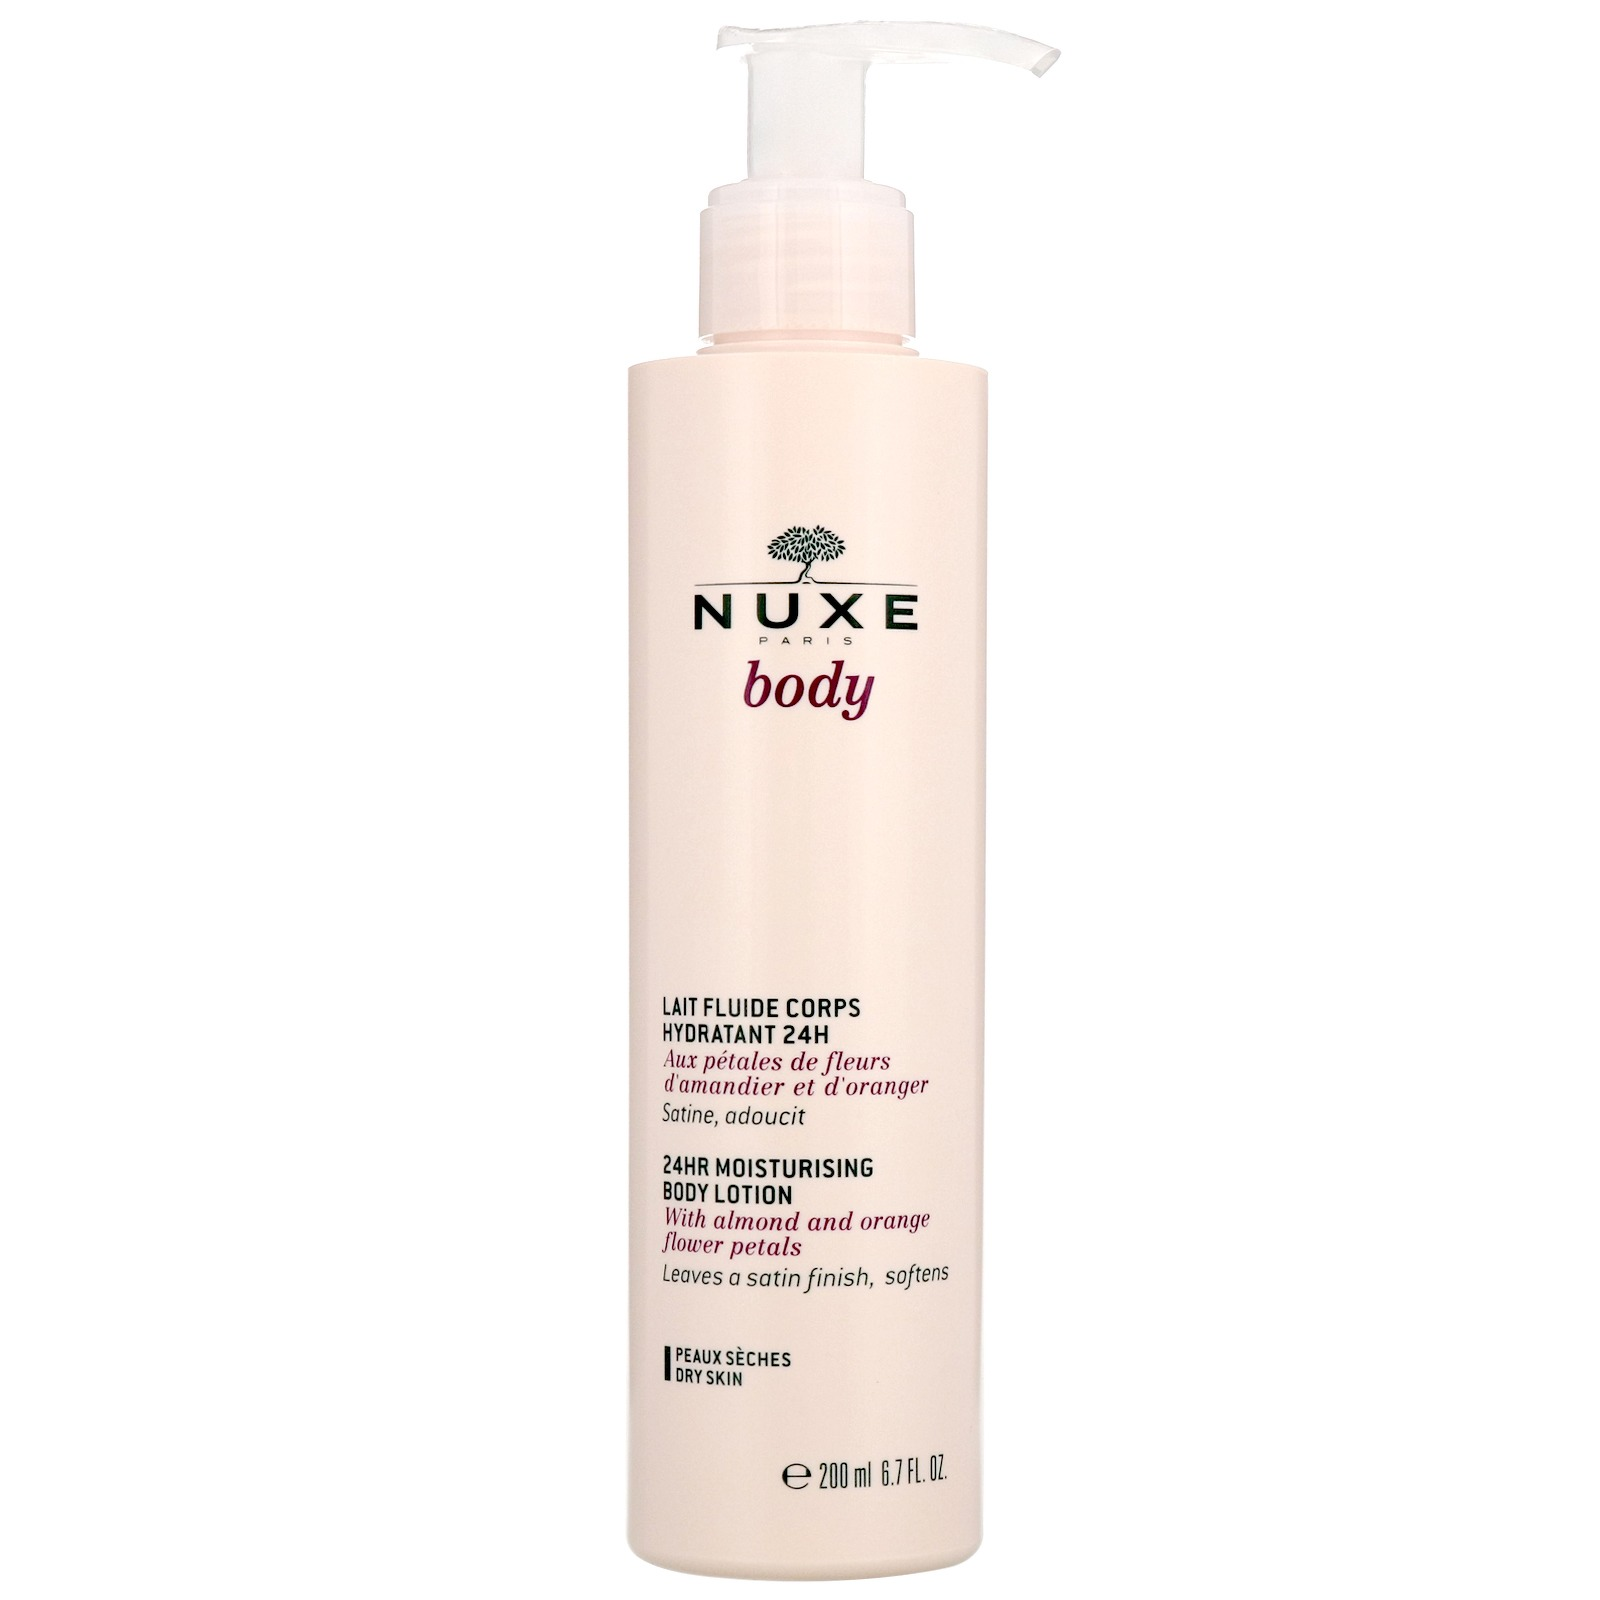 Nuxe Body 24hr Moisturizing Body Lotion 200ml